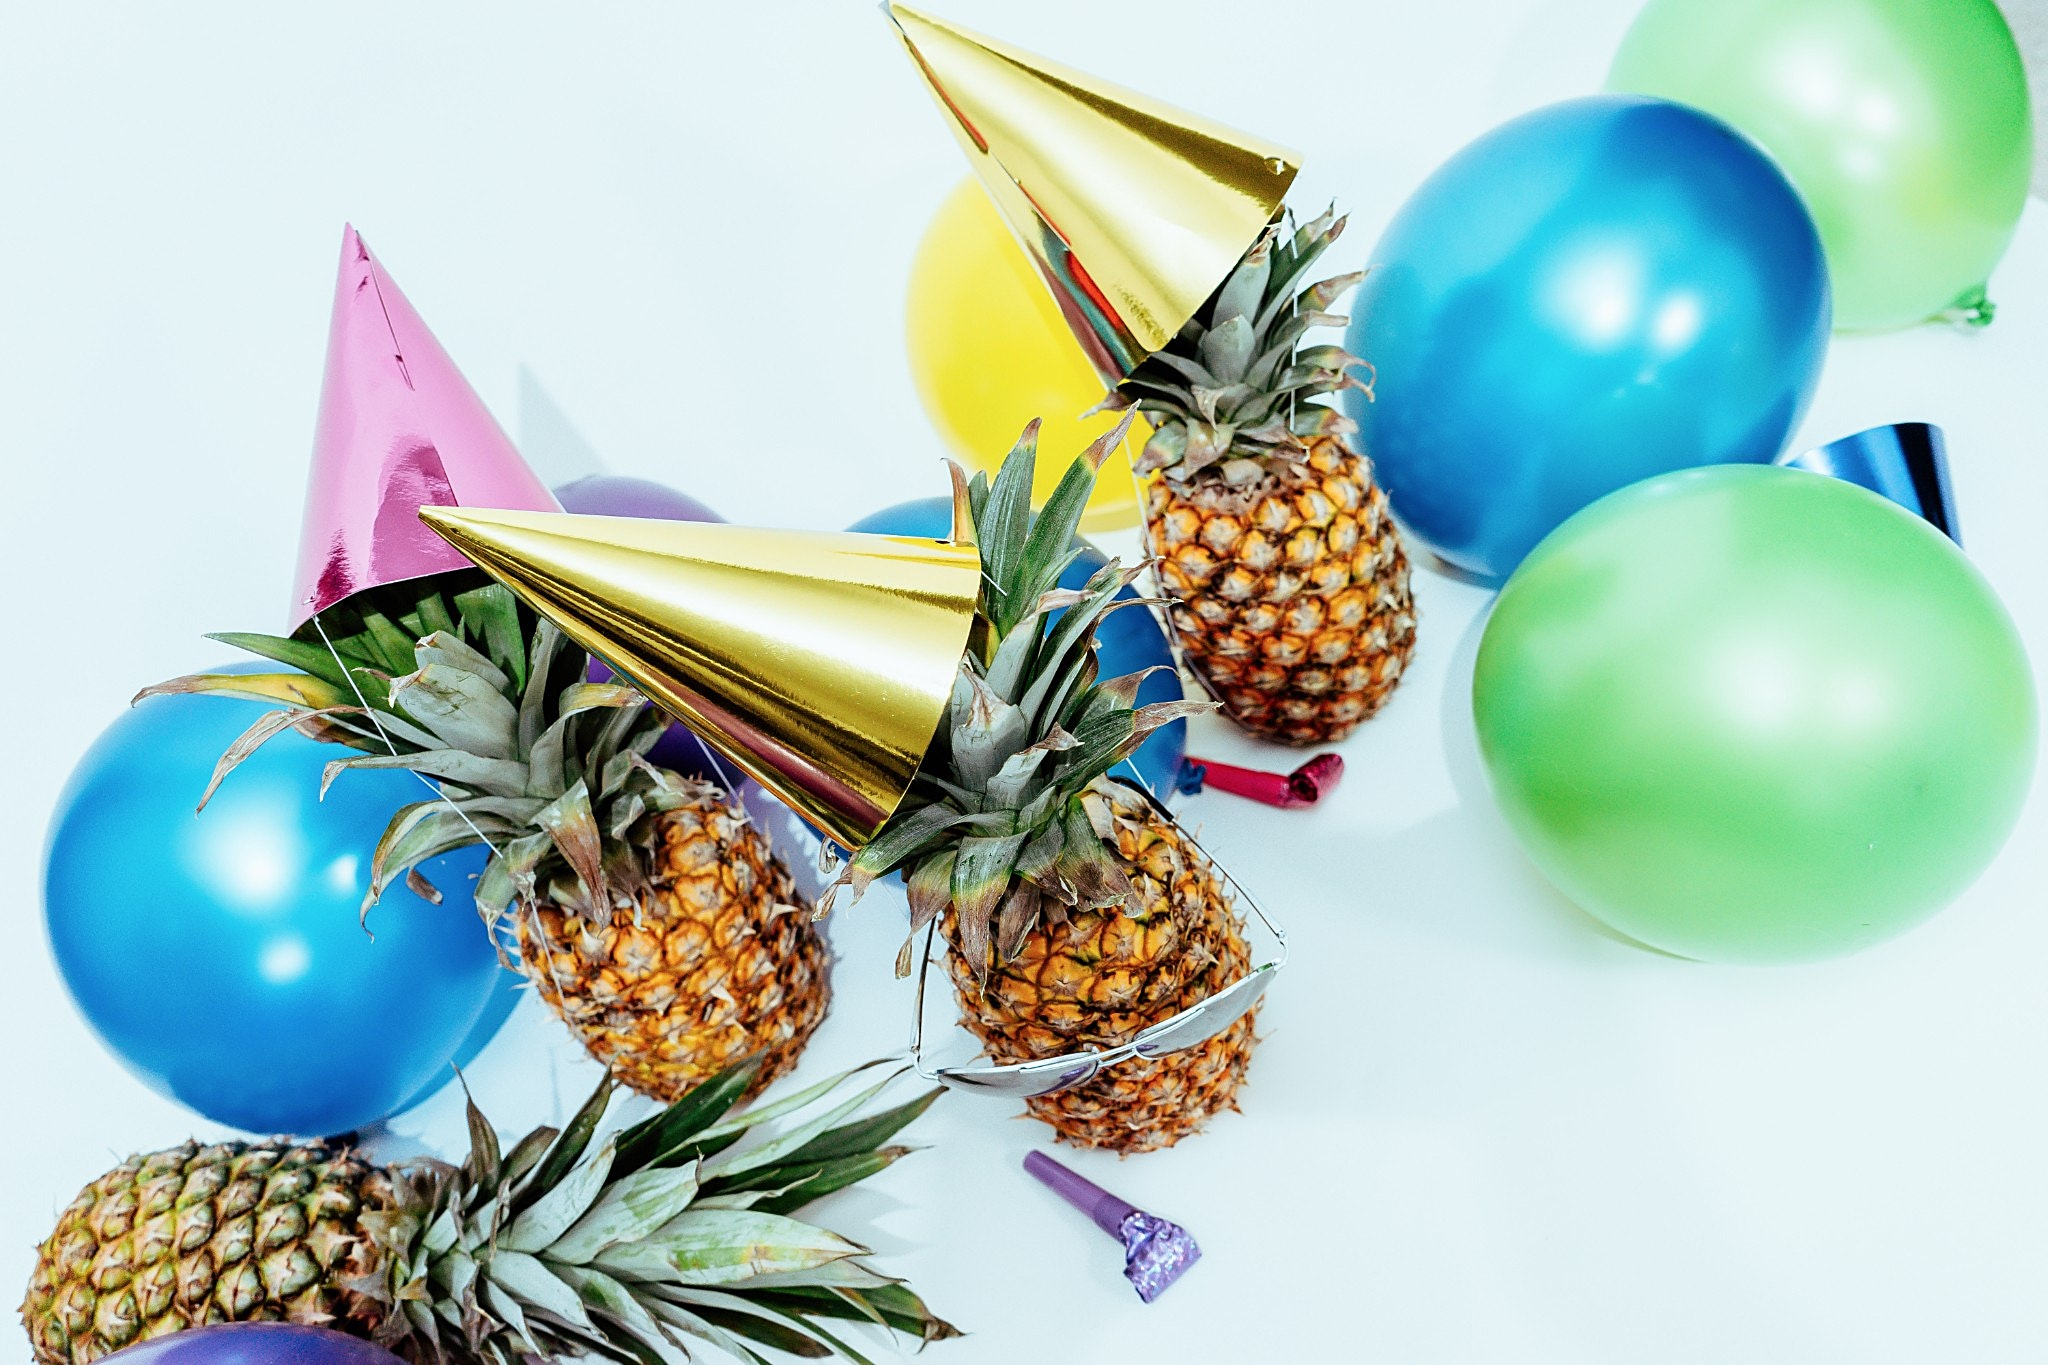 Party Time! Get the new Pineapple Party Photo Pack